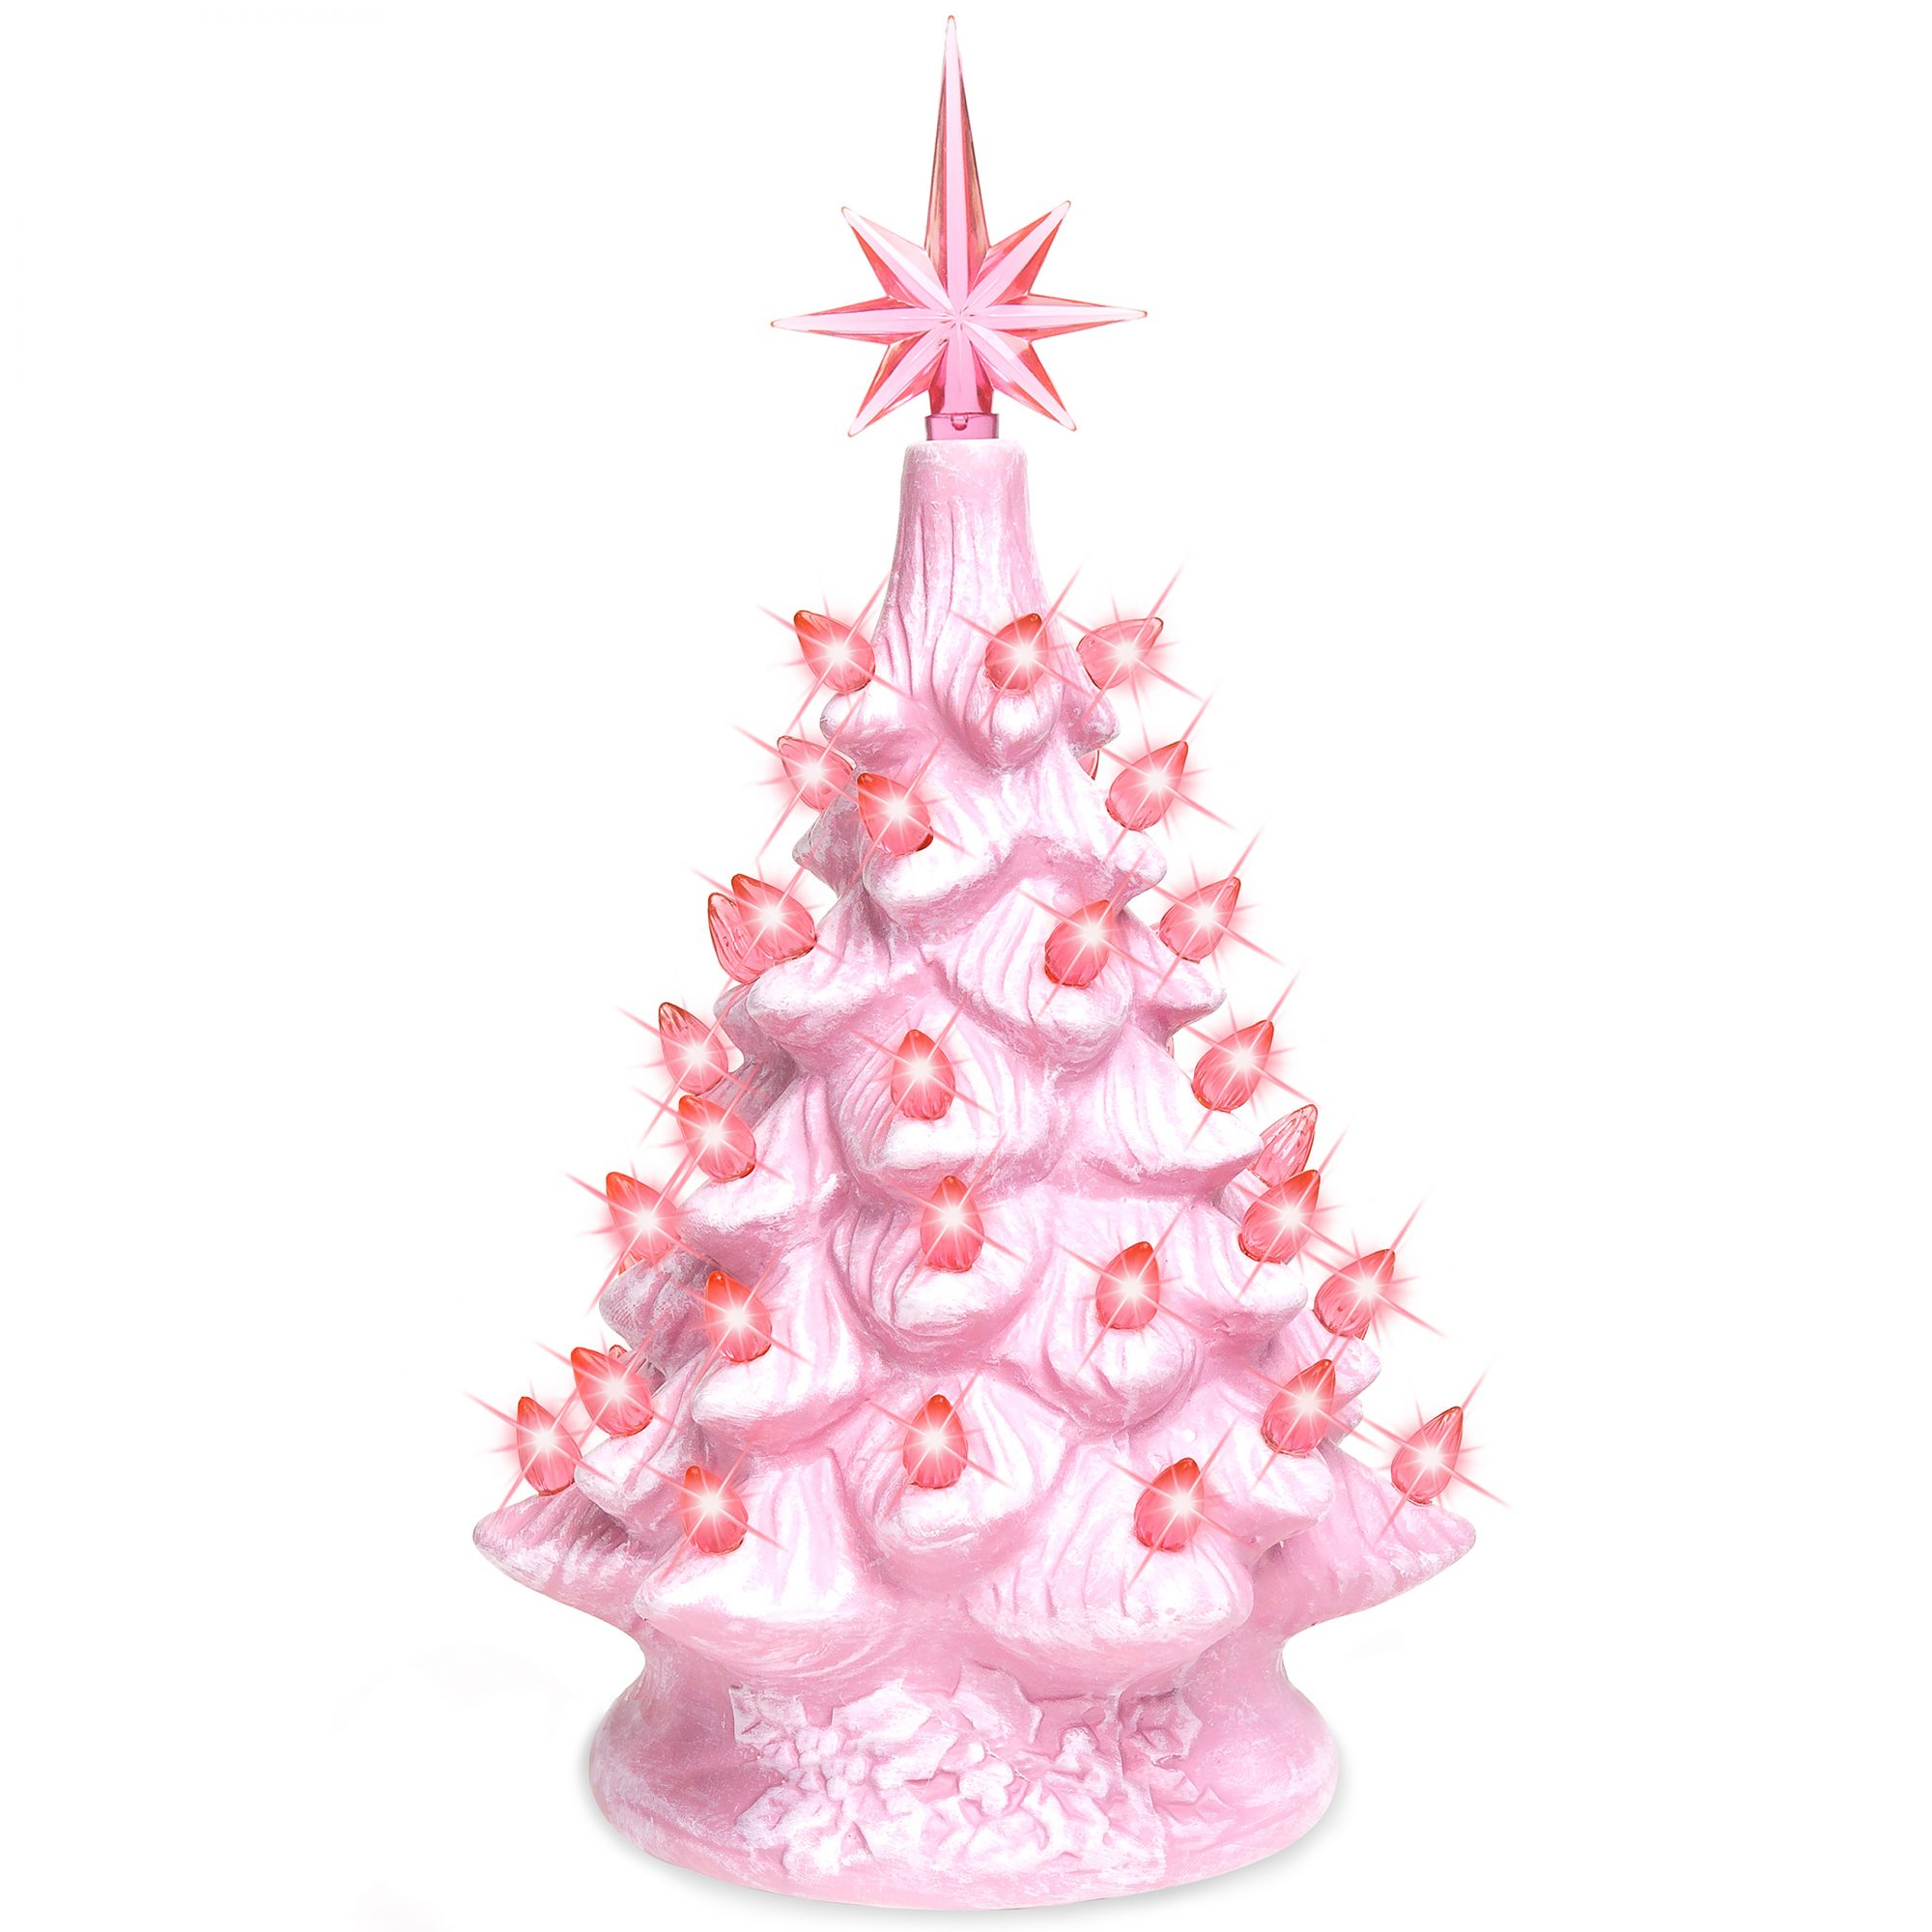 pink ceramic tree on a white background